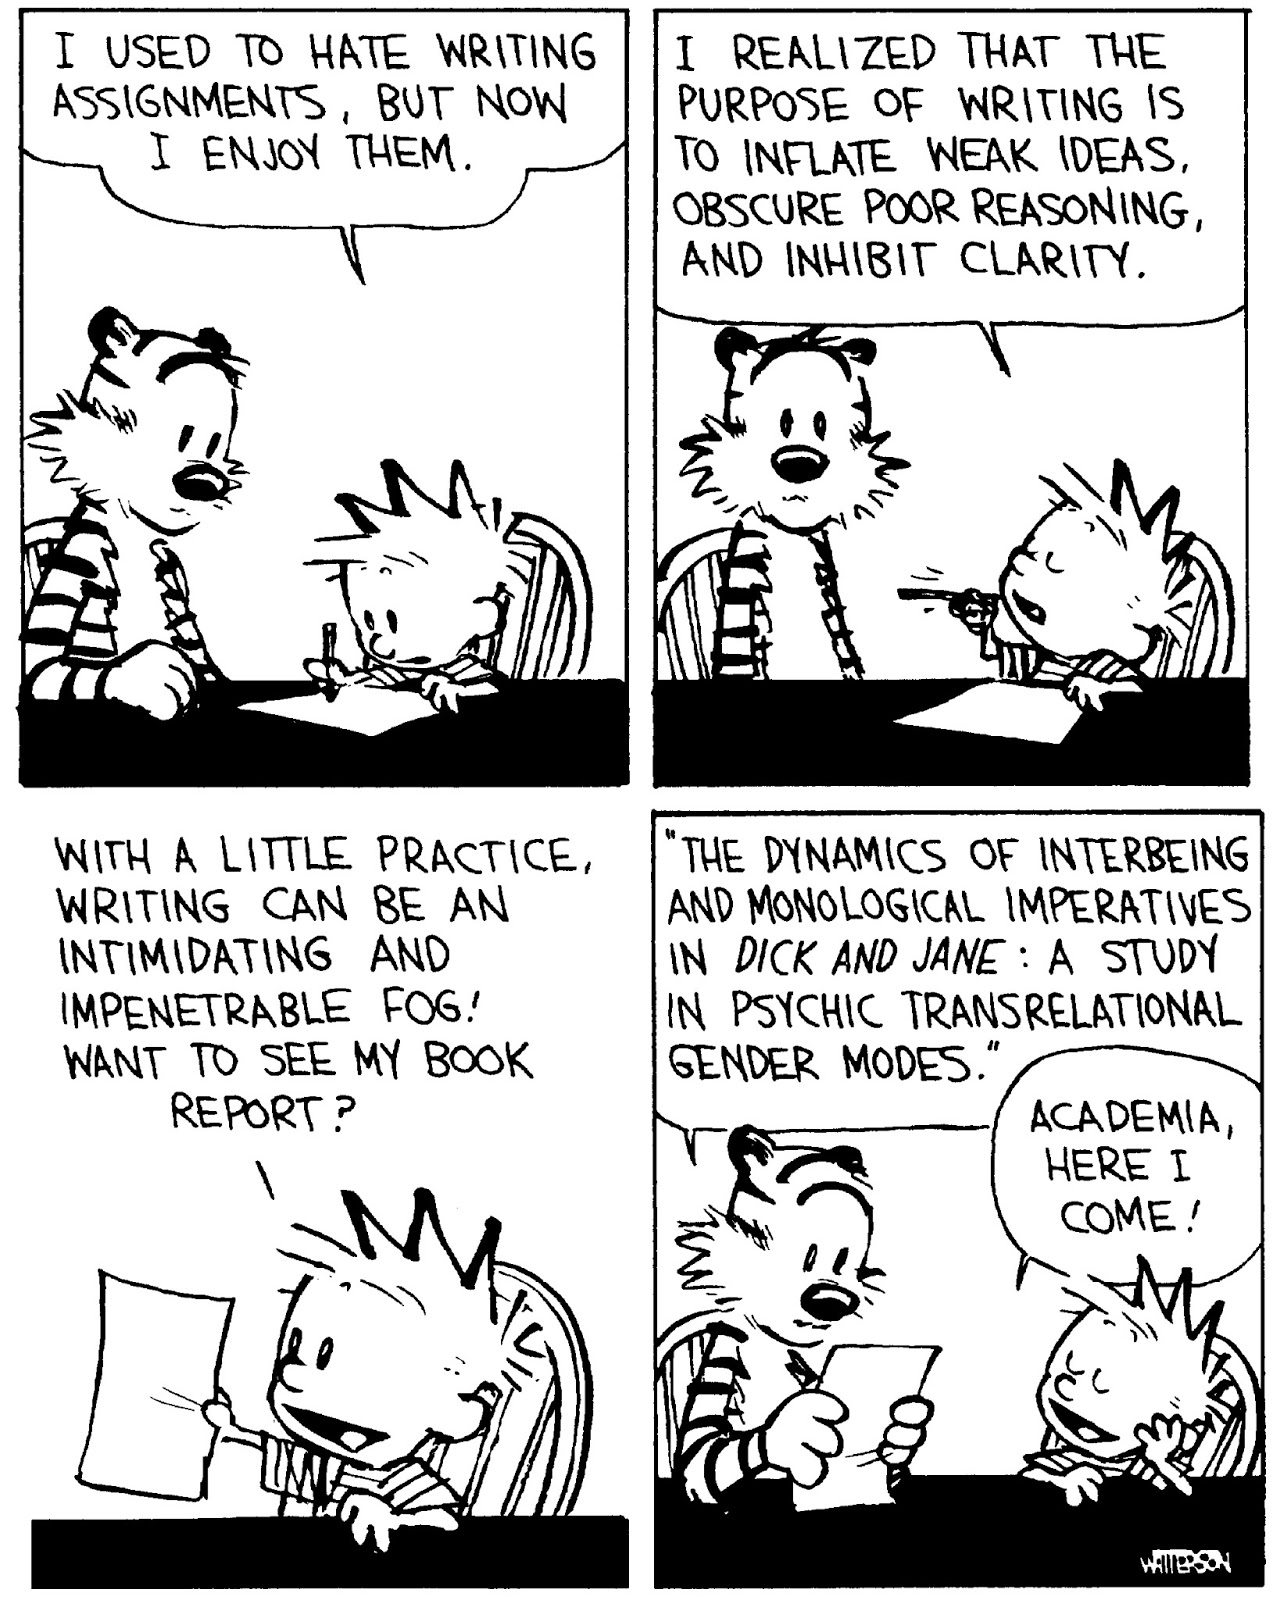 cartoons on reading and writing larry n on school reform and calvin and hobbes on writing writing 25906604 2000